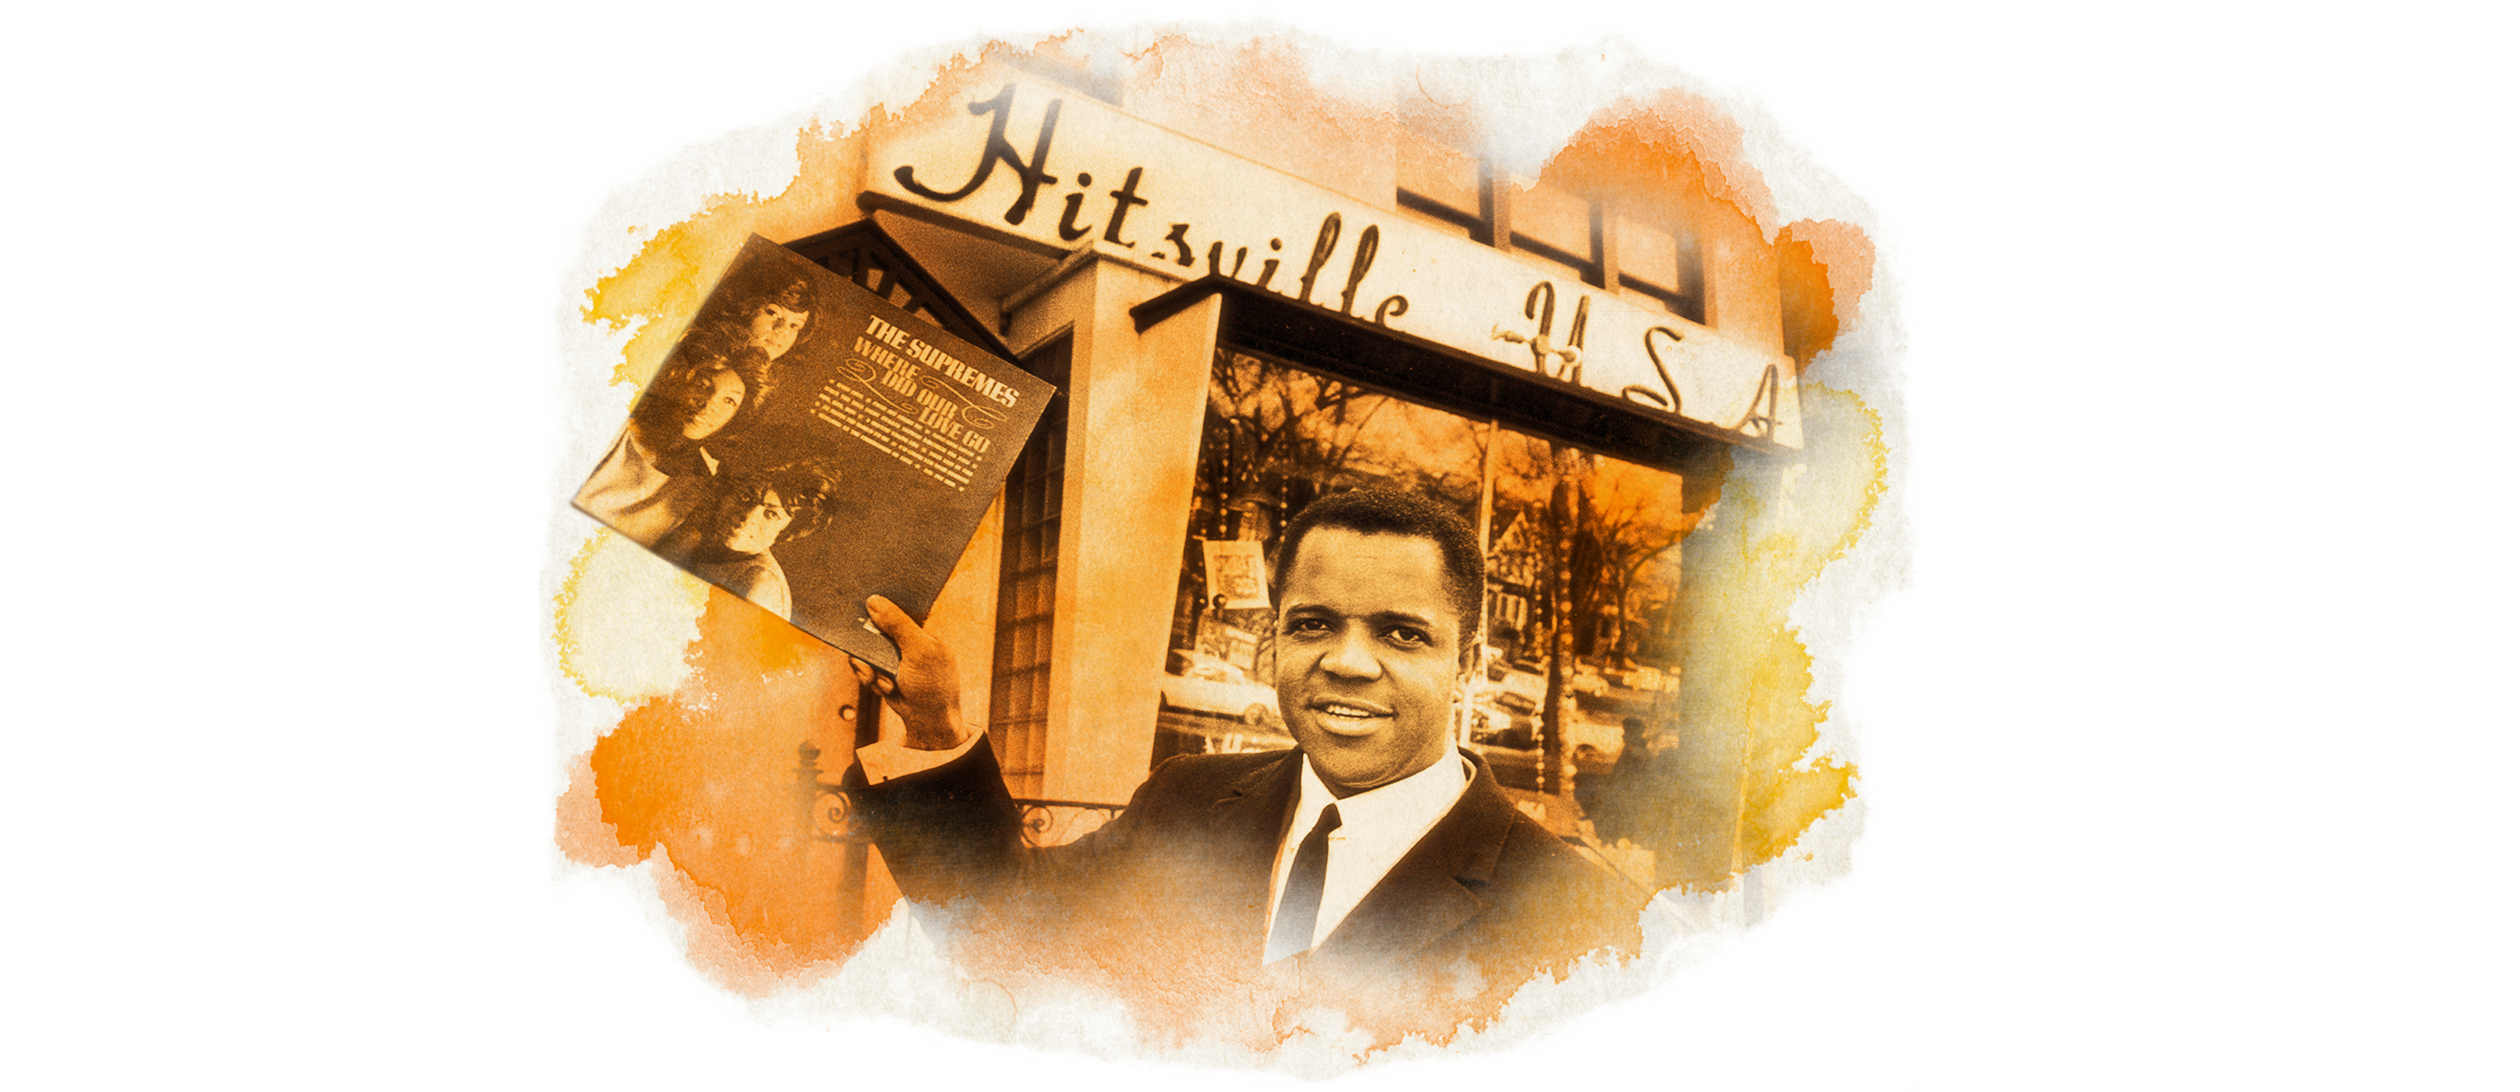 Berry Gordy Jr. outside the Hitsville USA on West Grand Boulevard in Detroit.